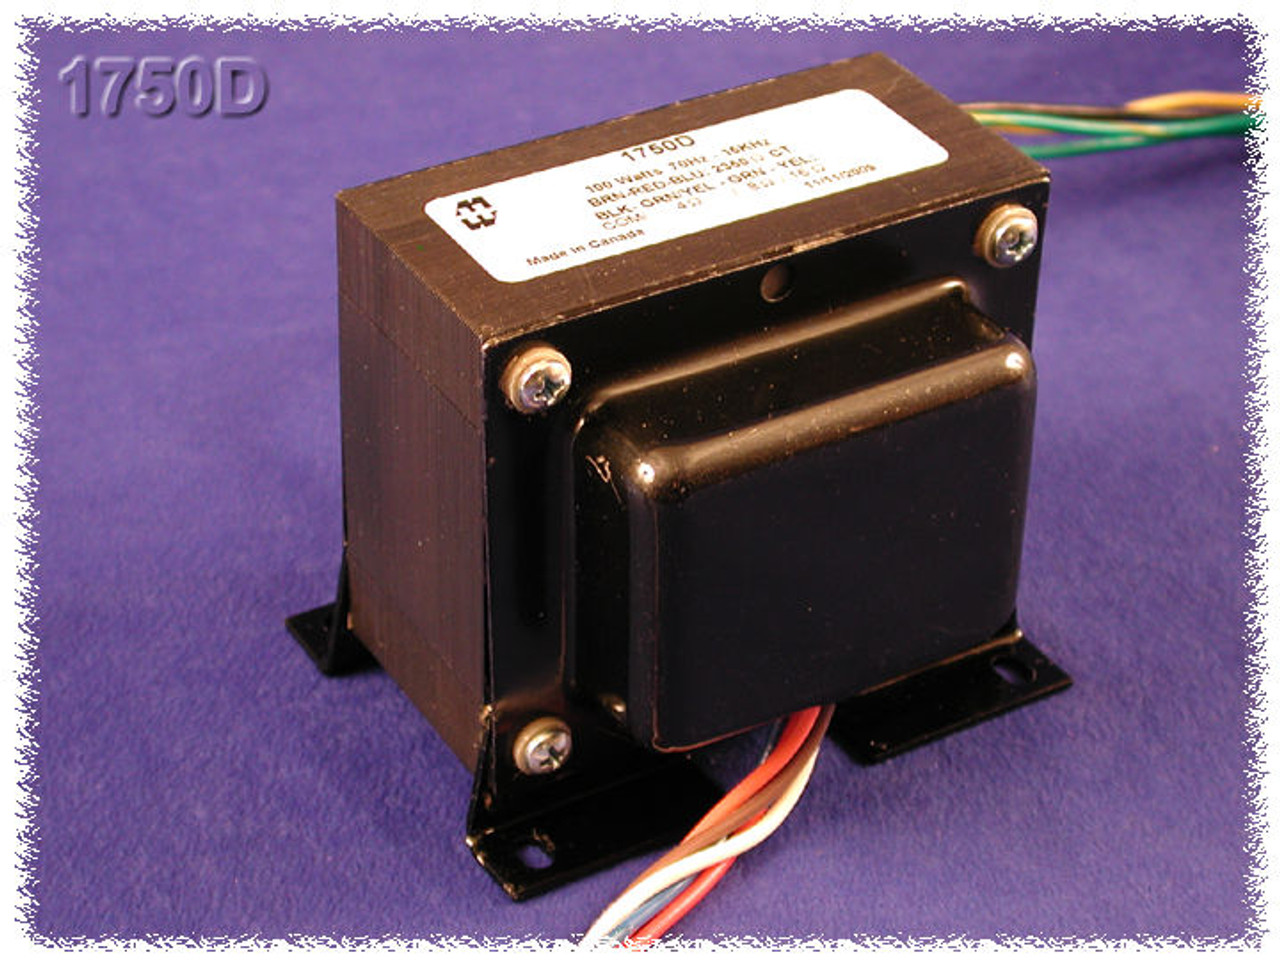 Hammond 1750D - Output Transformer